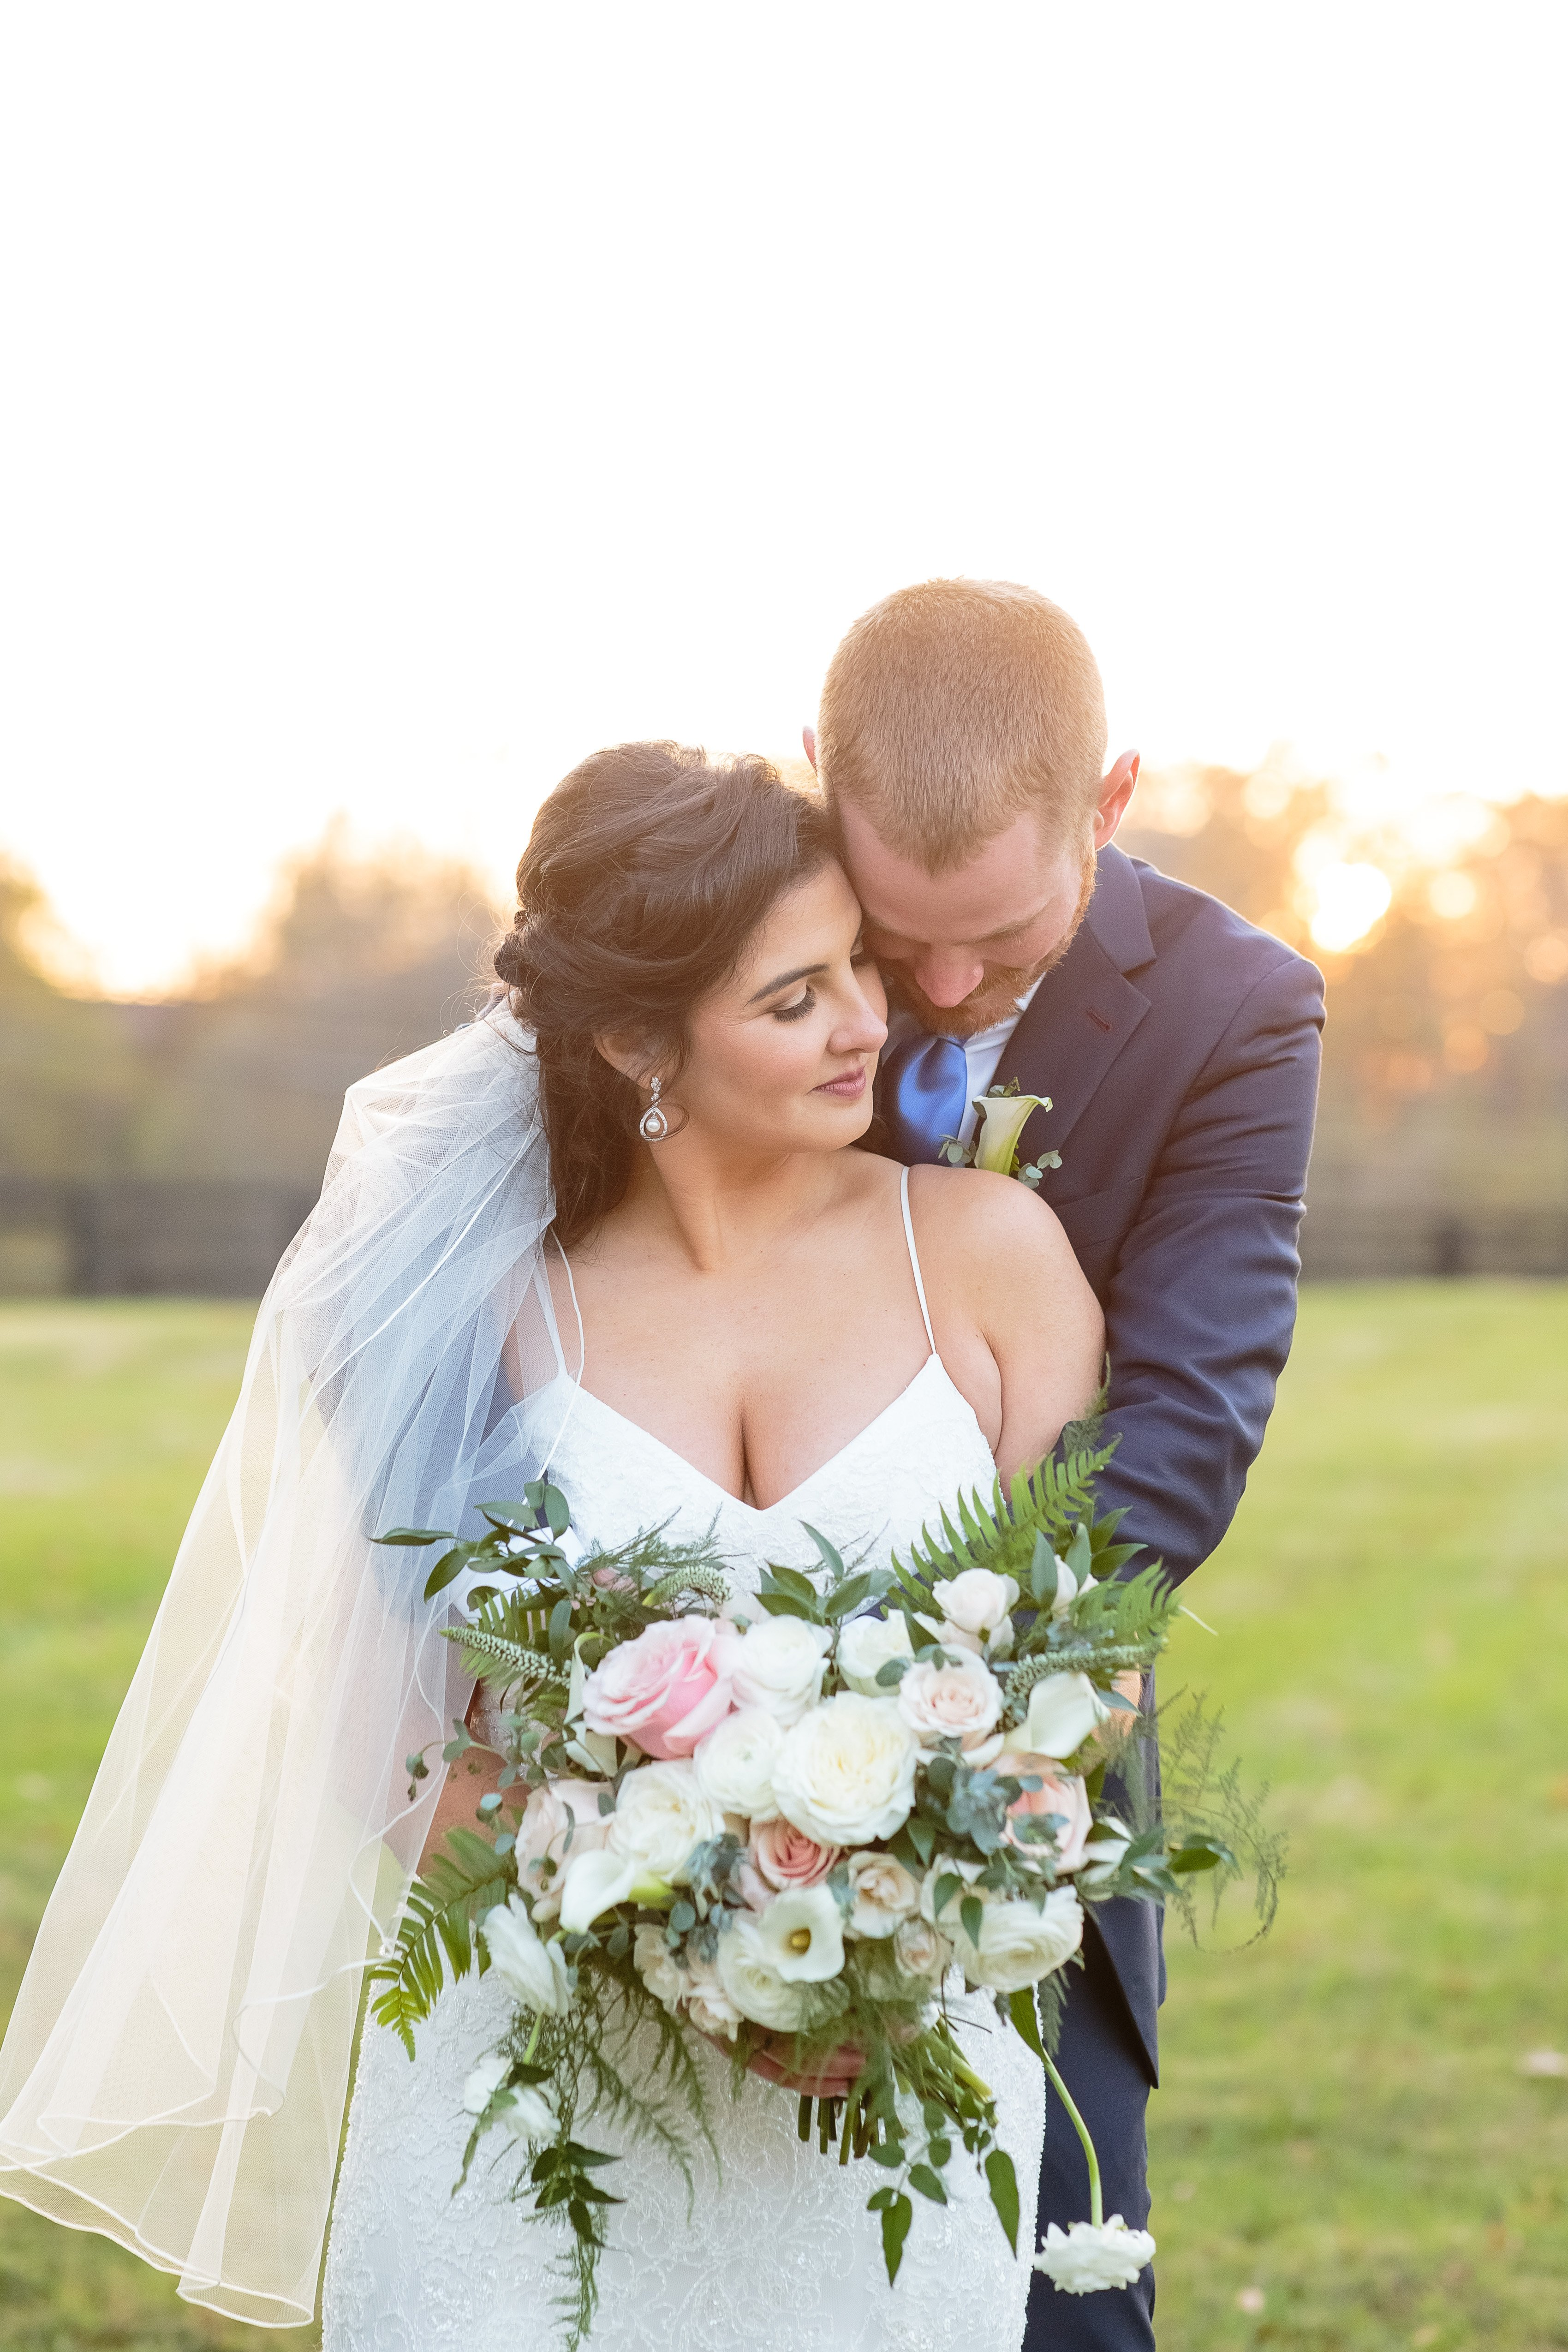 Planning a wedding in Nashville | LeeHenry Events